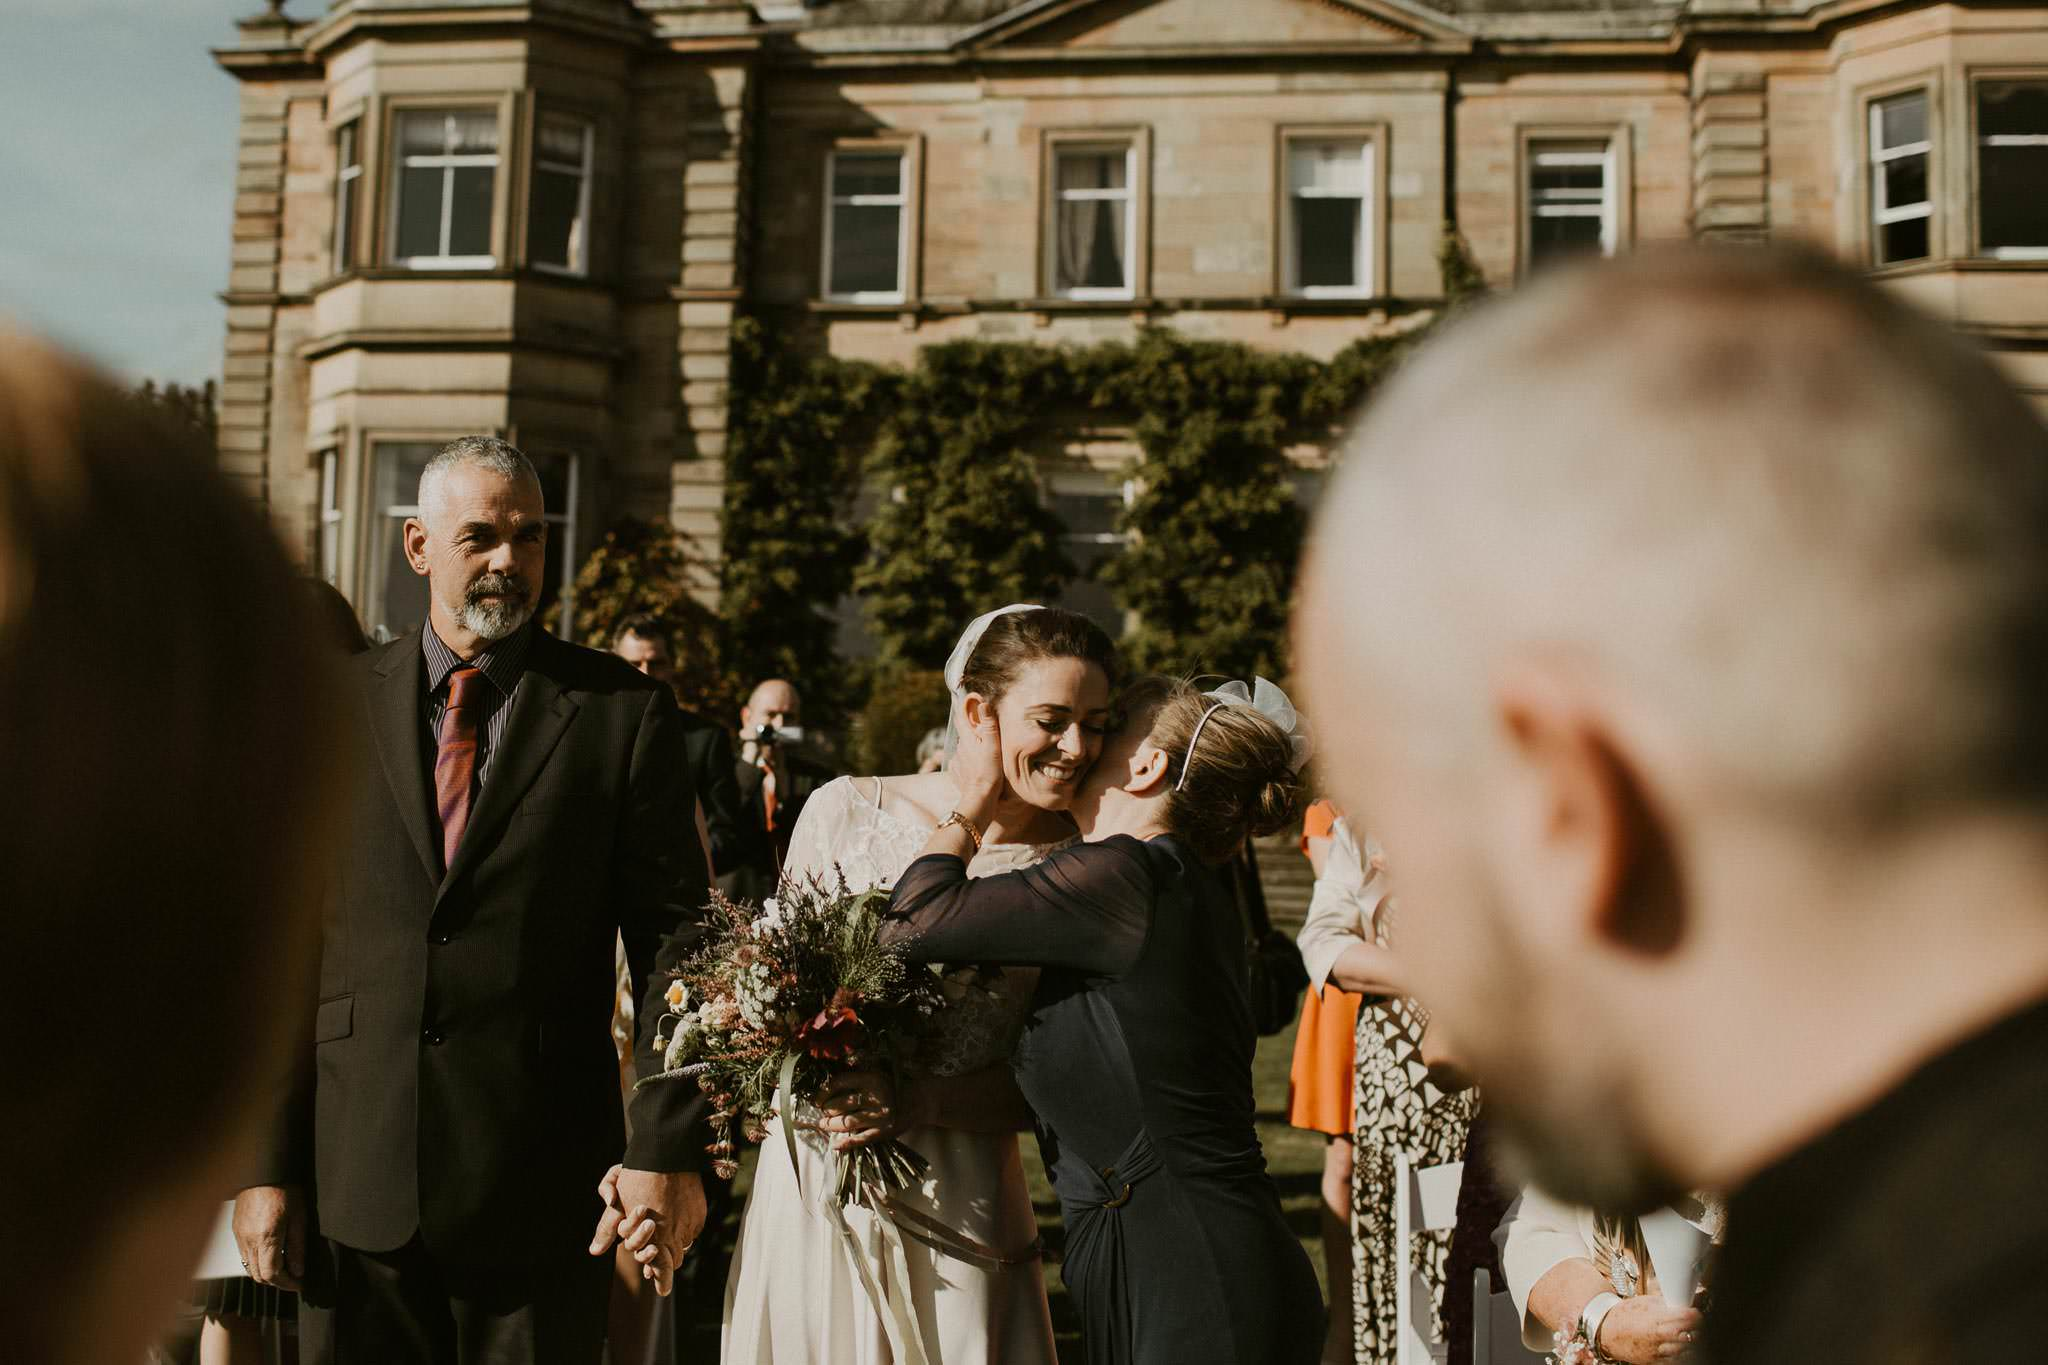 wedding-photographer-scotland-046